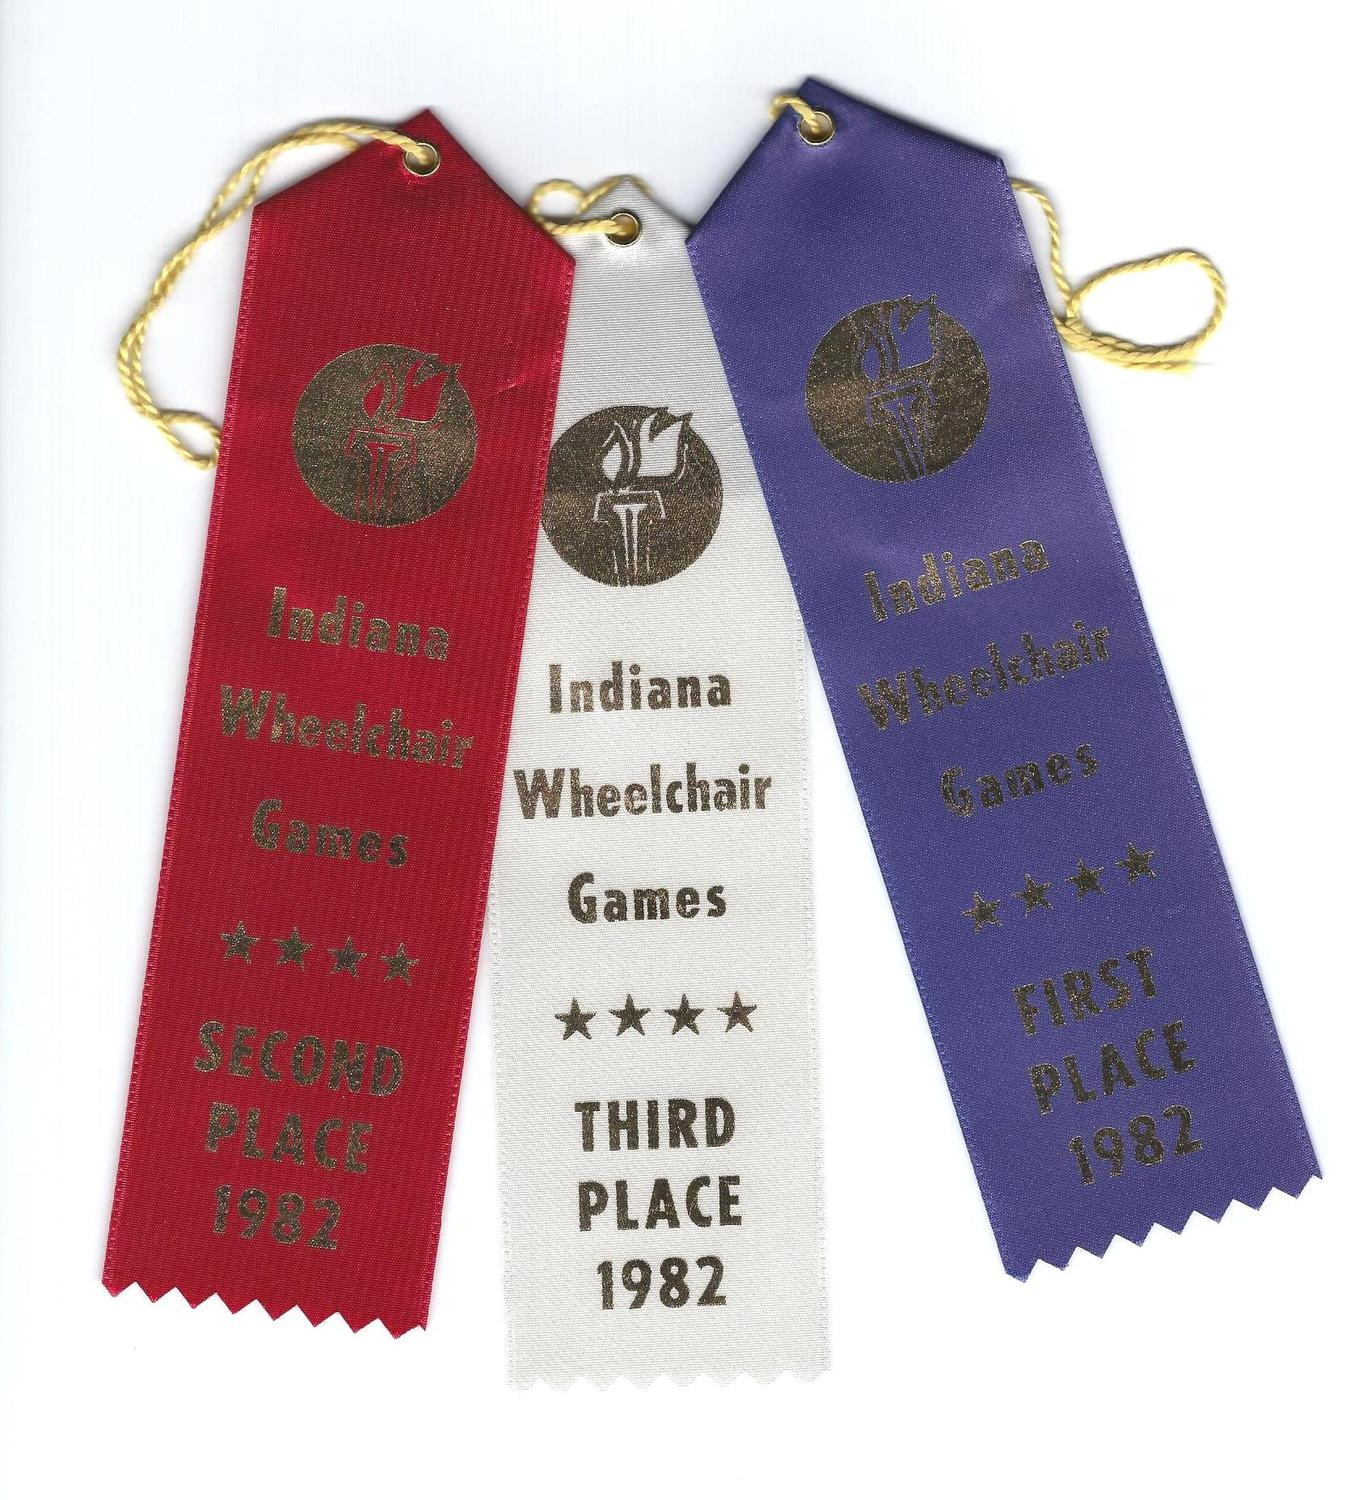 Indiana Wheelchair Games Ribbons